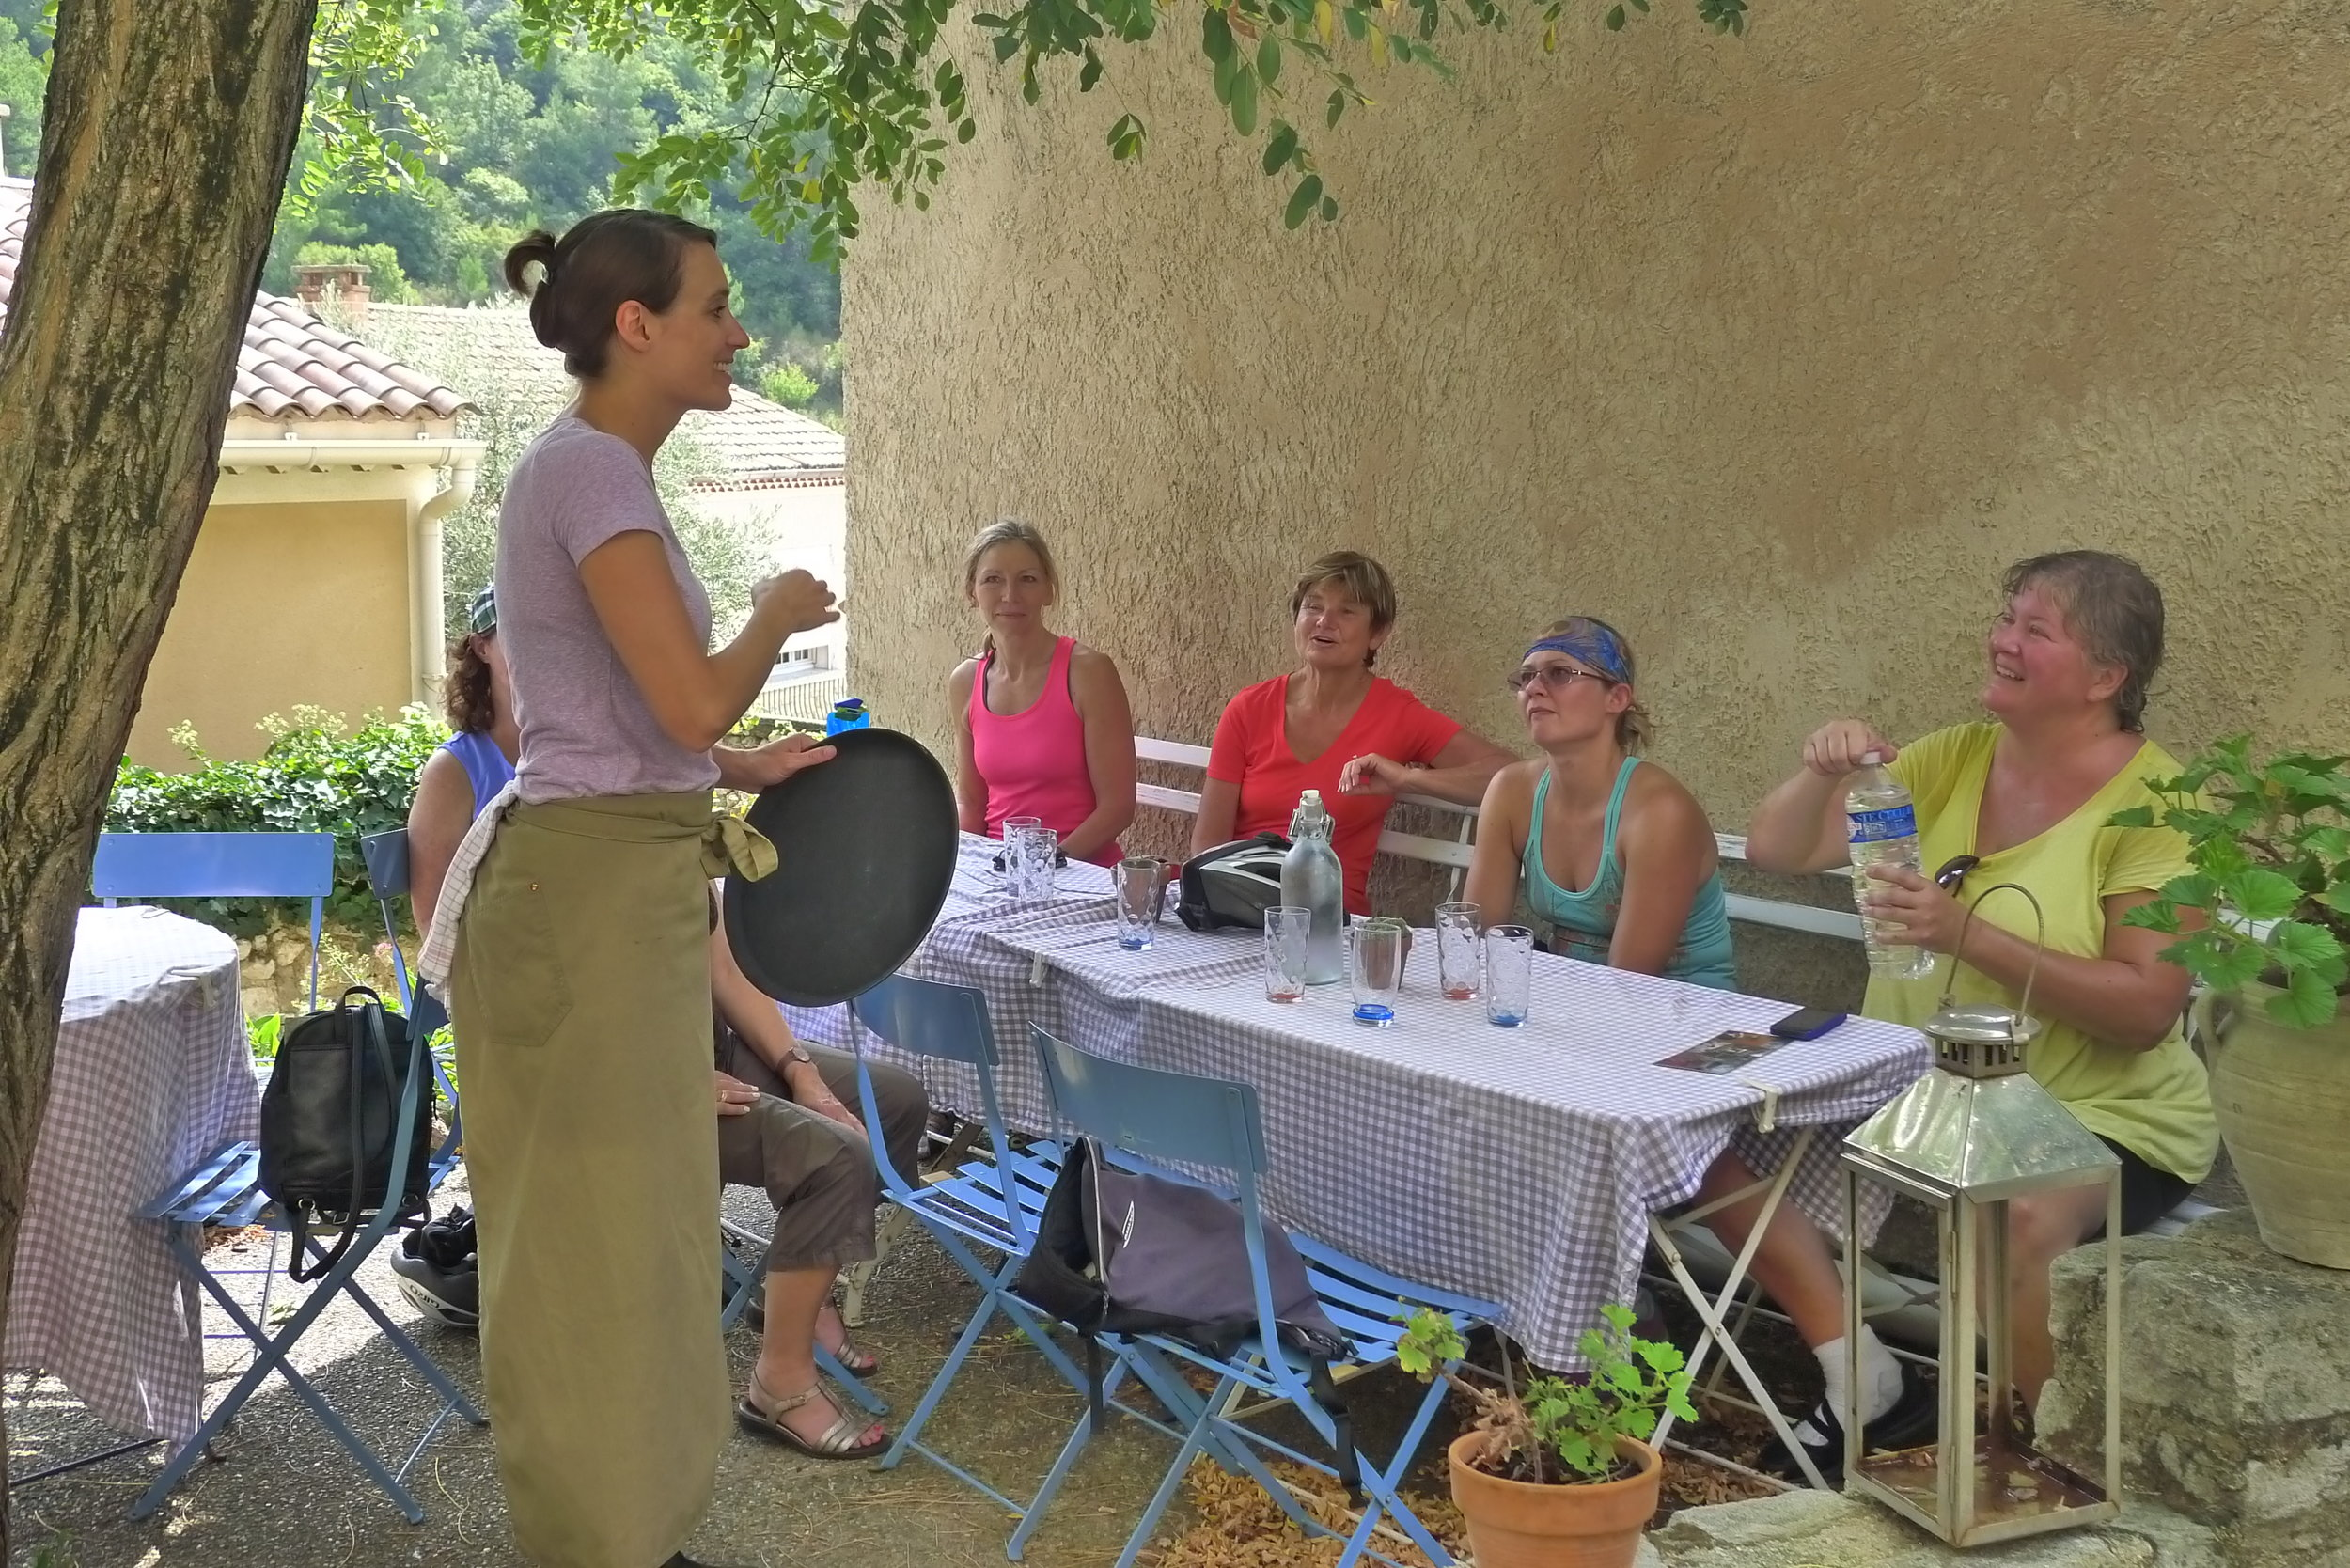 Stopping for refreshments at a village café